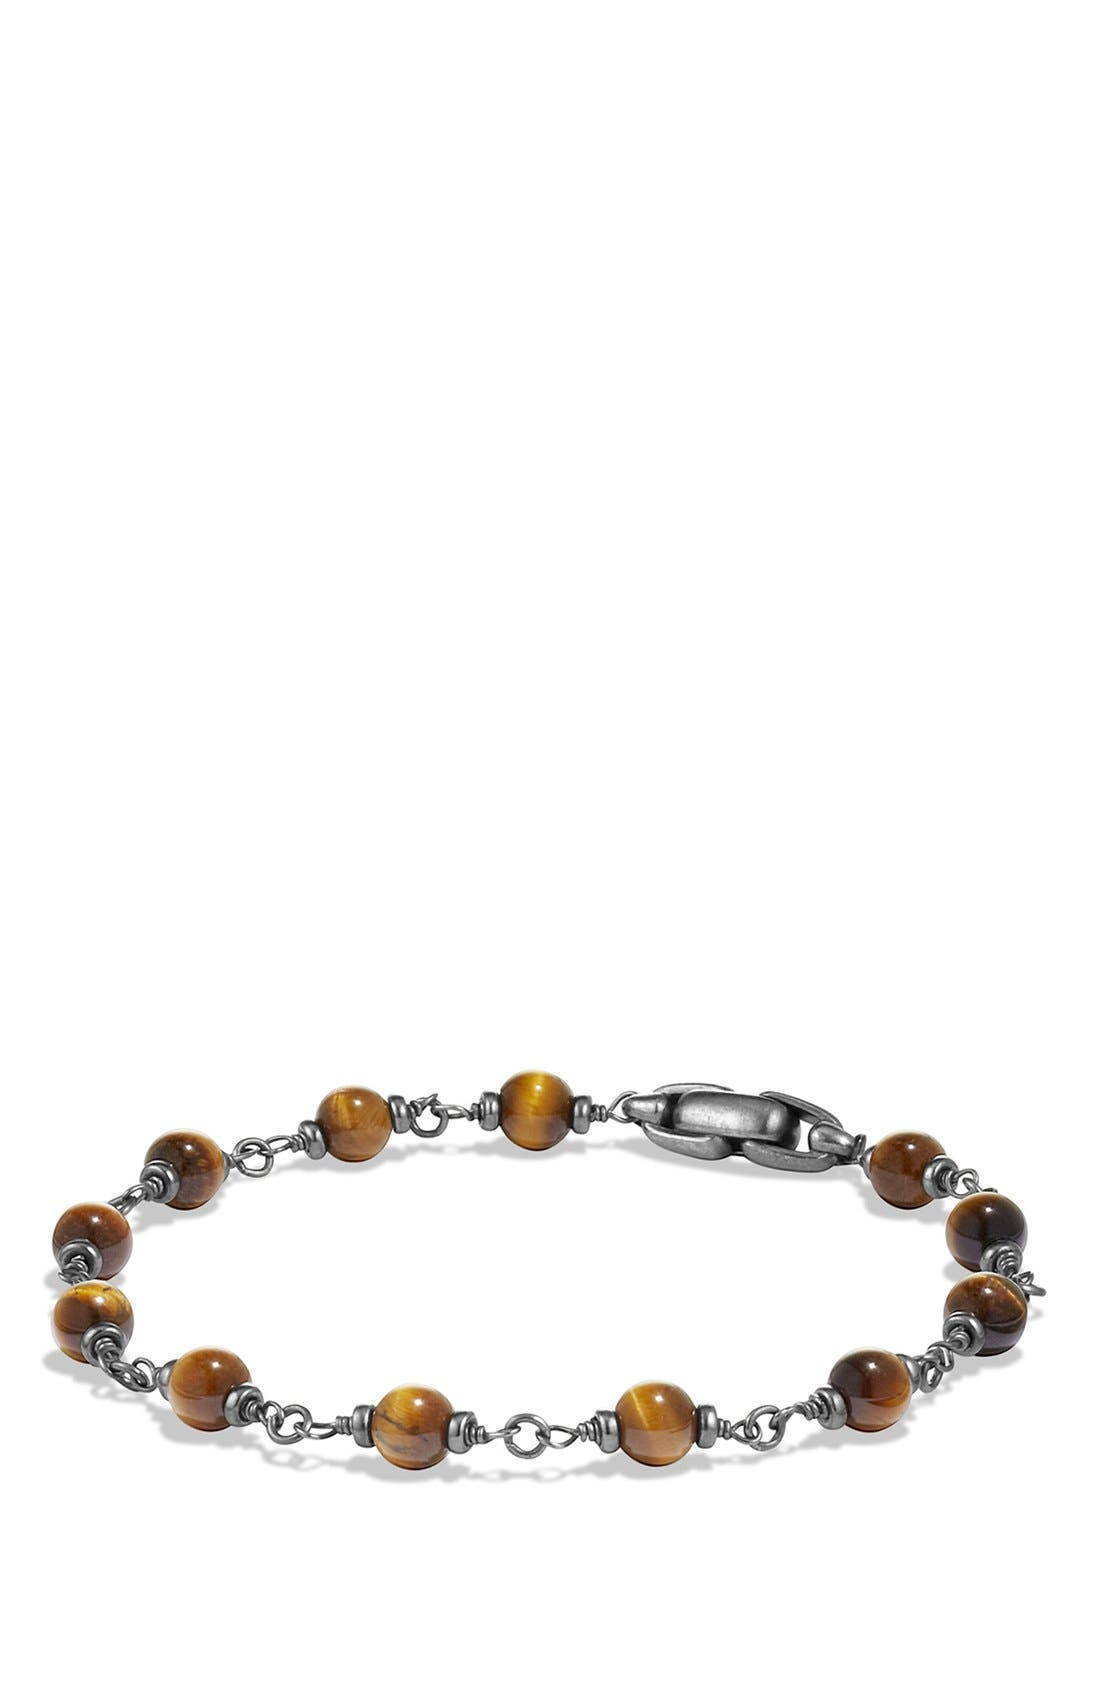 DAVID YURMAN 'Spiritual Beads' Rosary Bead Bracelet, Main, color, TIGER EYE